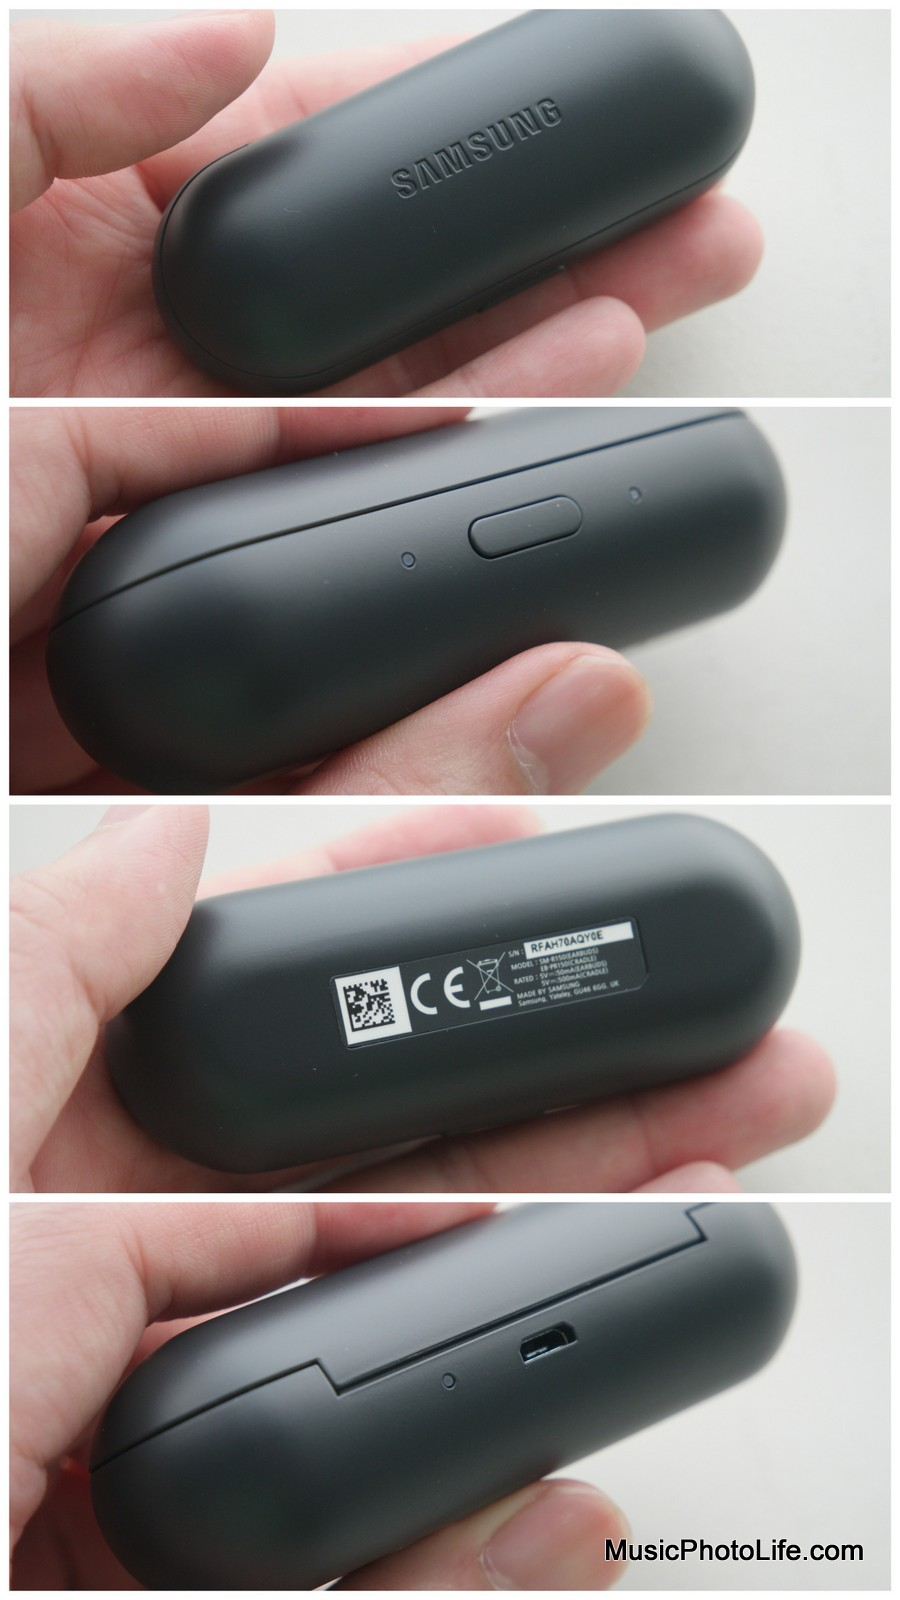 Samsung Gear IconX charging case